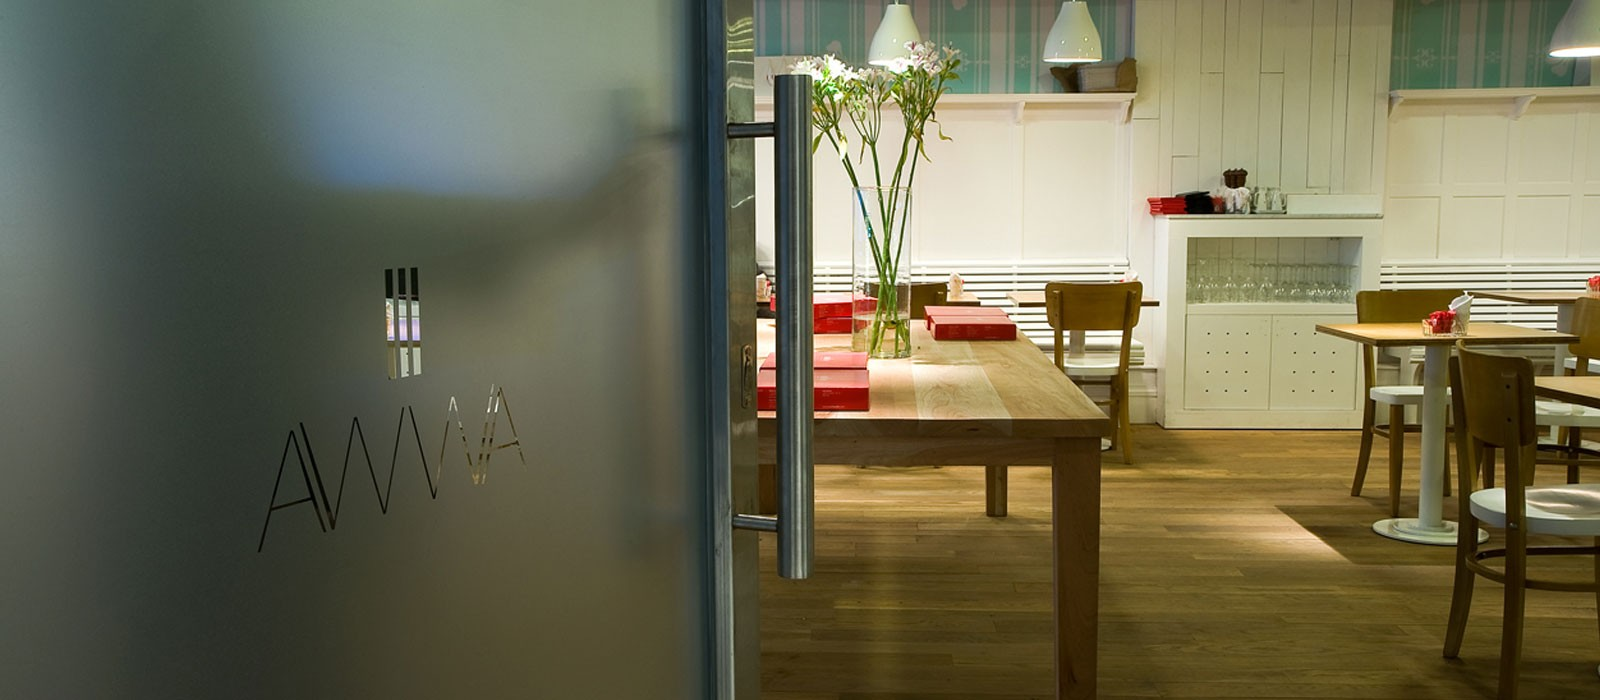 <strong>Hotel Awwa - </strong> HOTEL AWWA SUITES & SPA - BUENOS AIRES